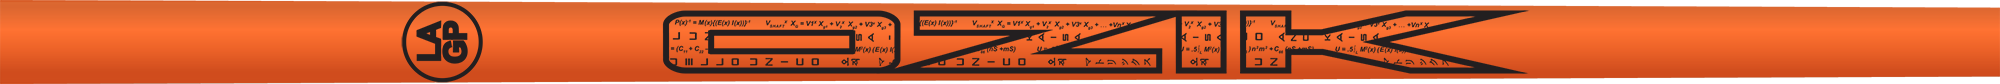 Ozik White Tie: Neon Orange Black Satin - Wood 40 R